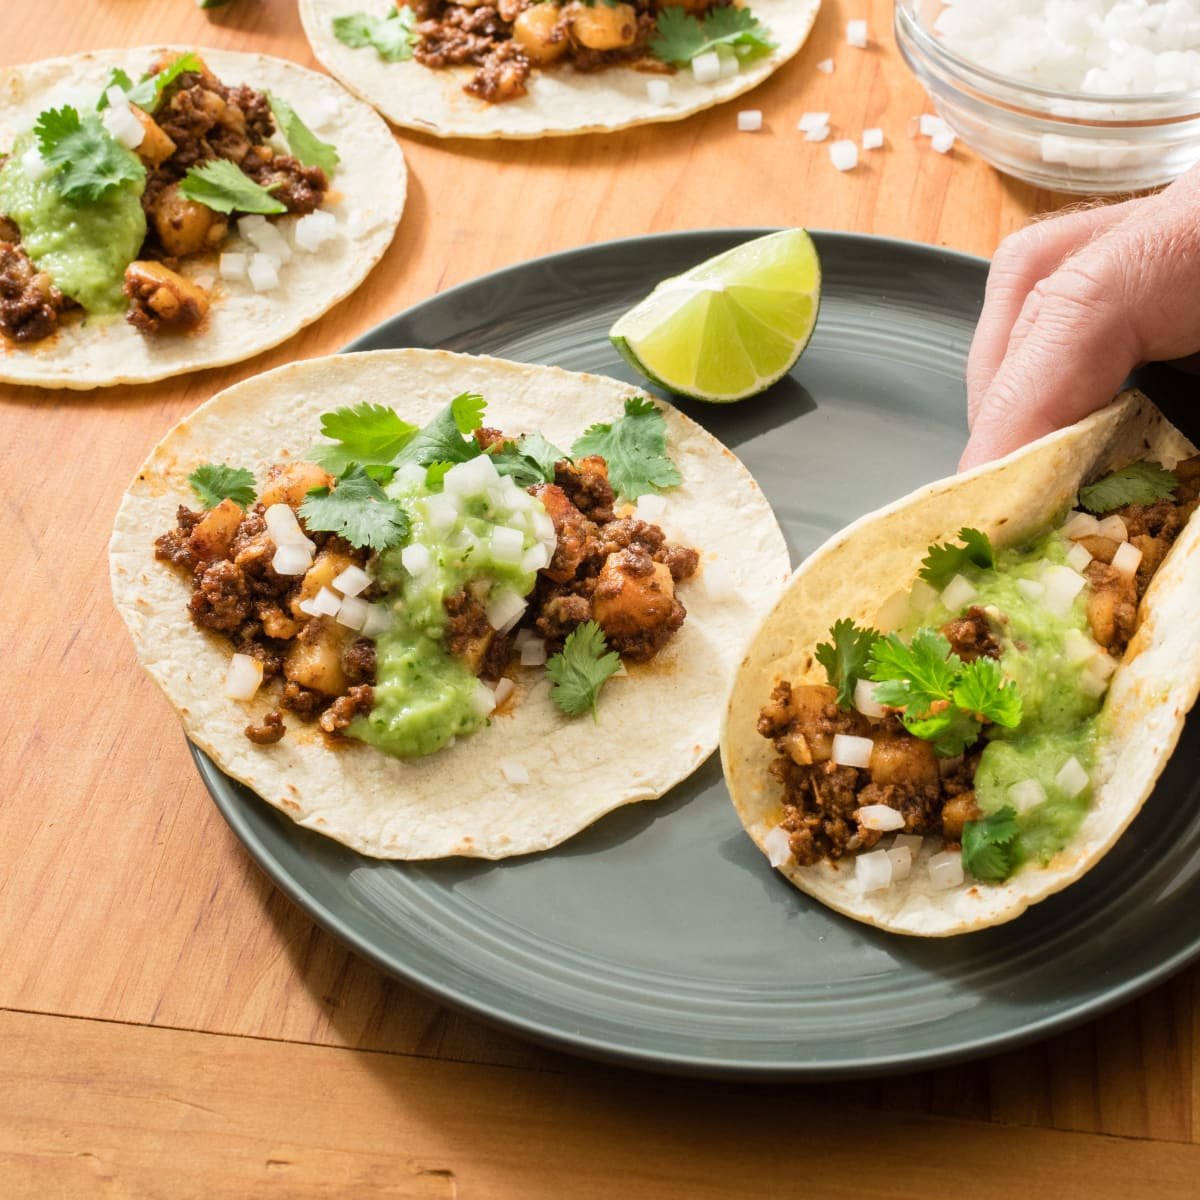 Youll love the diversity of our stops, as we enjoy the taco voted Best in America by Bon Appetit.